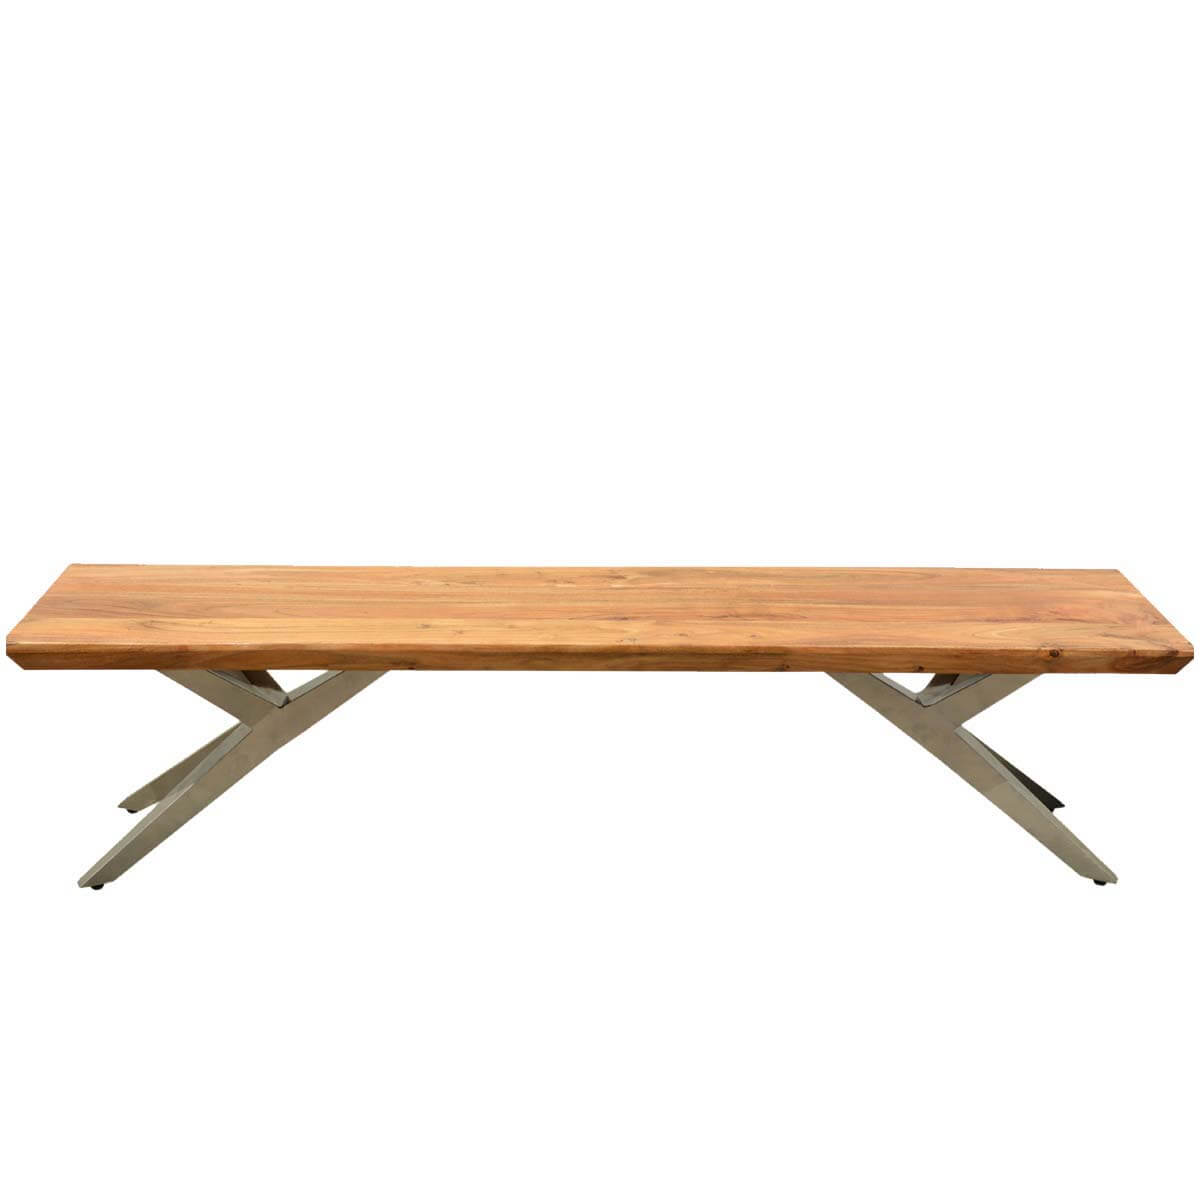 Rustic Wood Bench : Rustic Contemporary Acacia Wood Airloft Bench